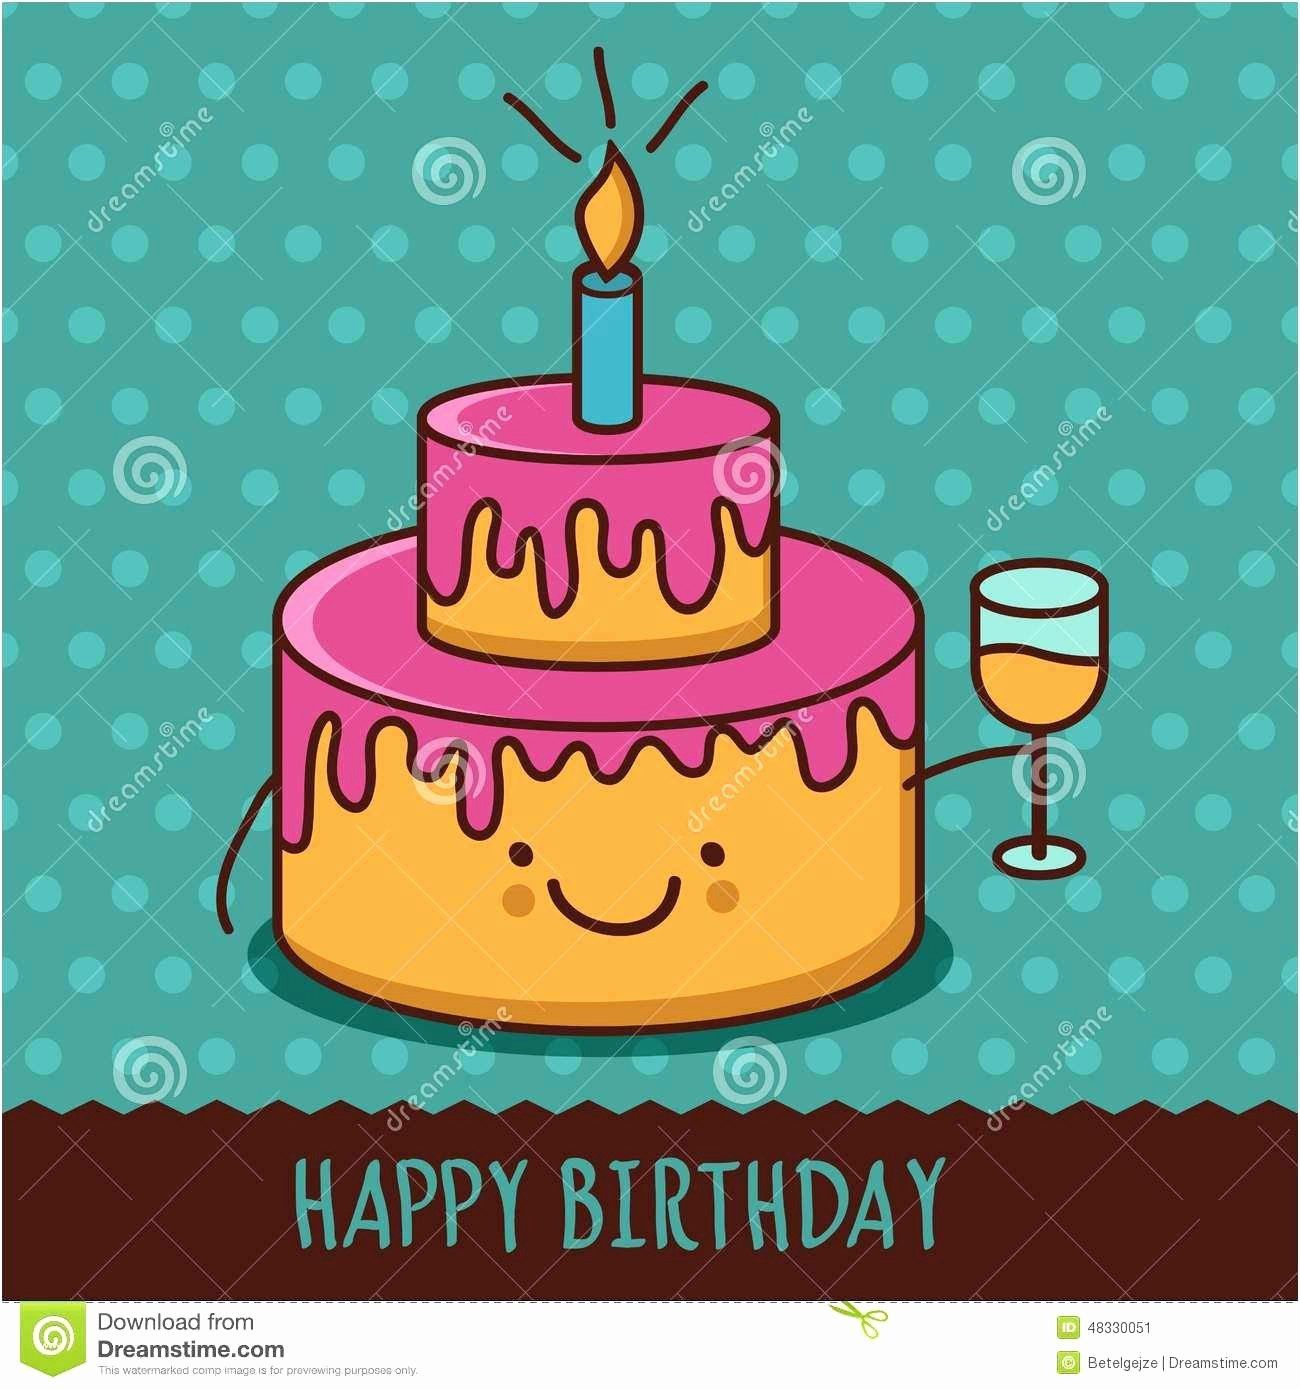 Funny Birthday Greetings Images in 2020 (With images